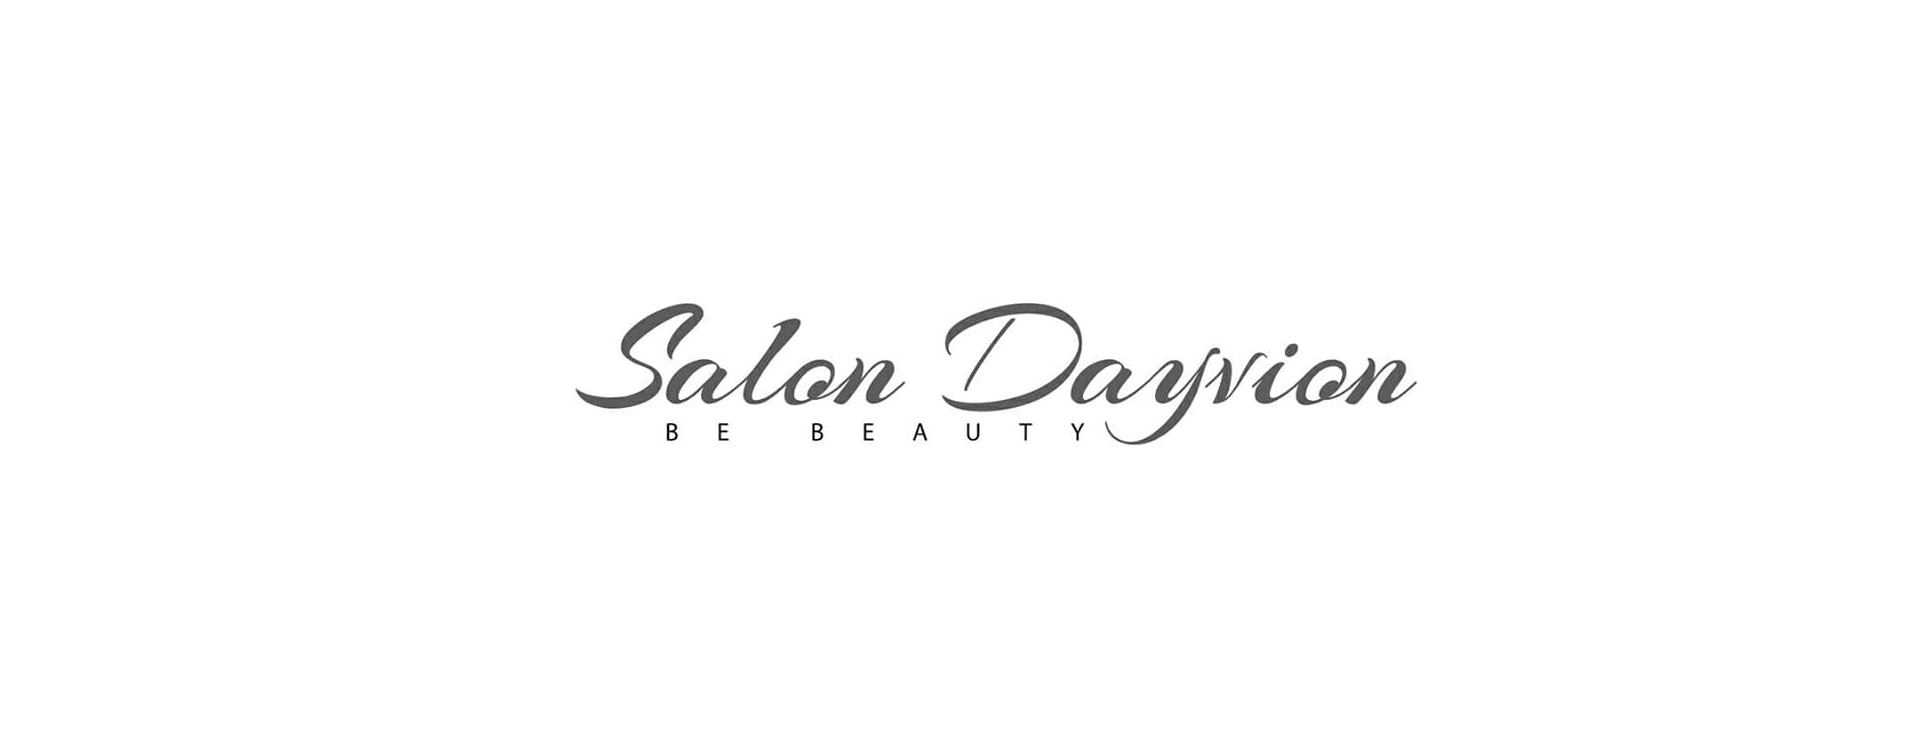 Salon Dayvion